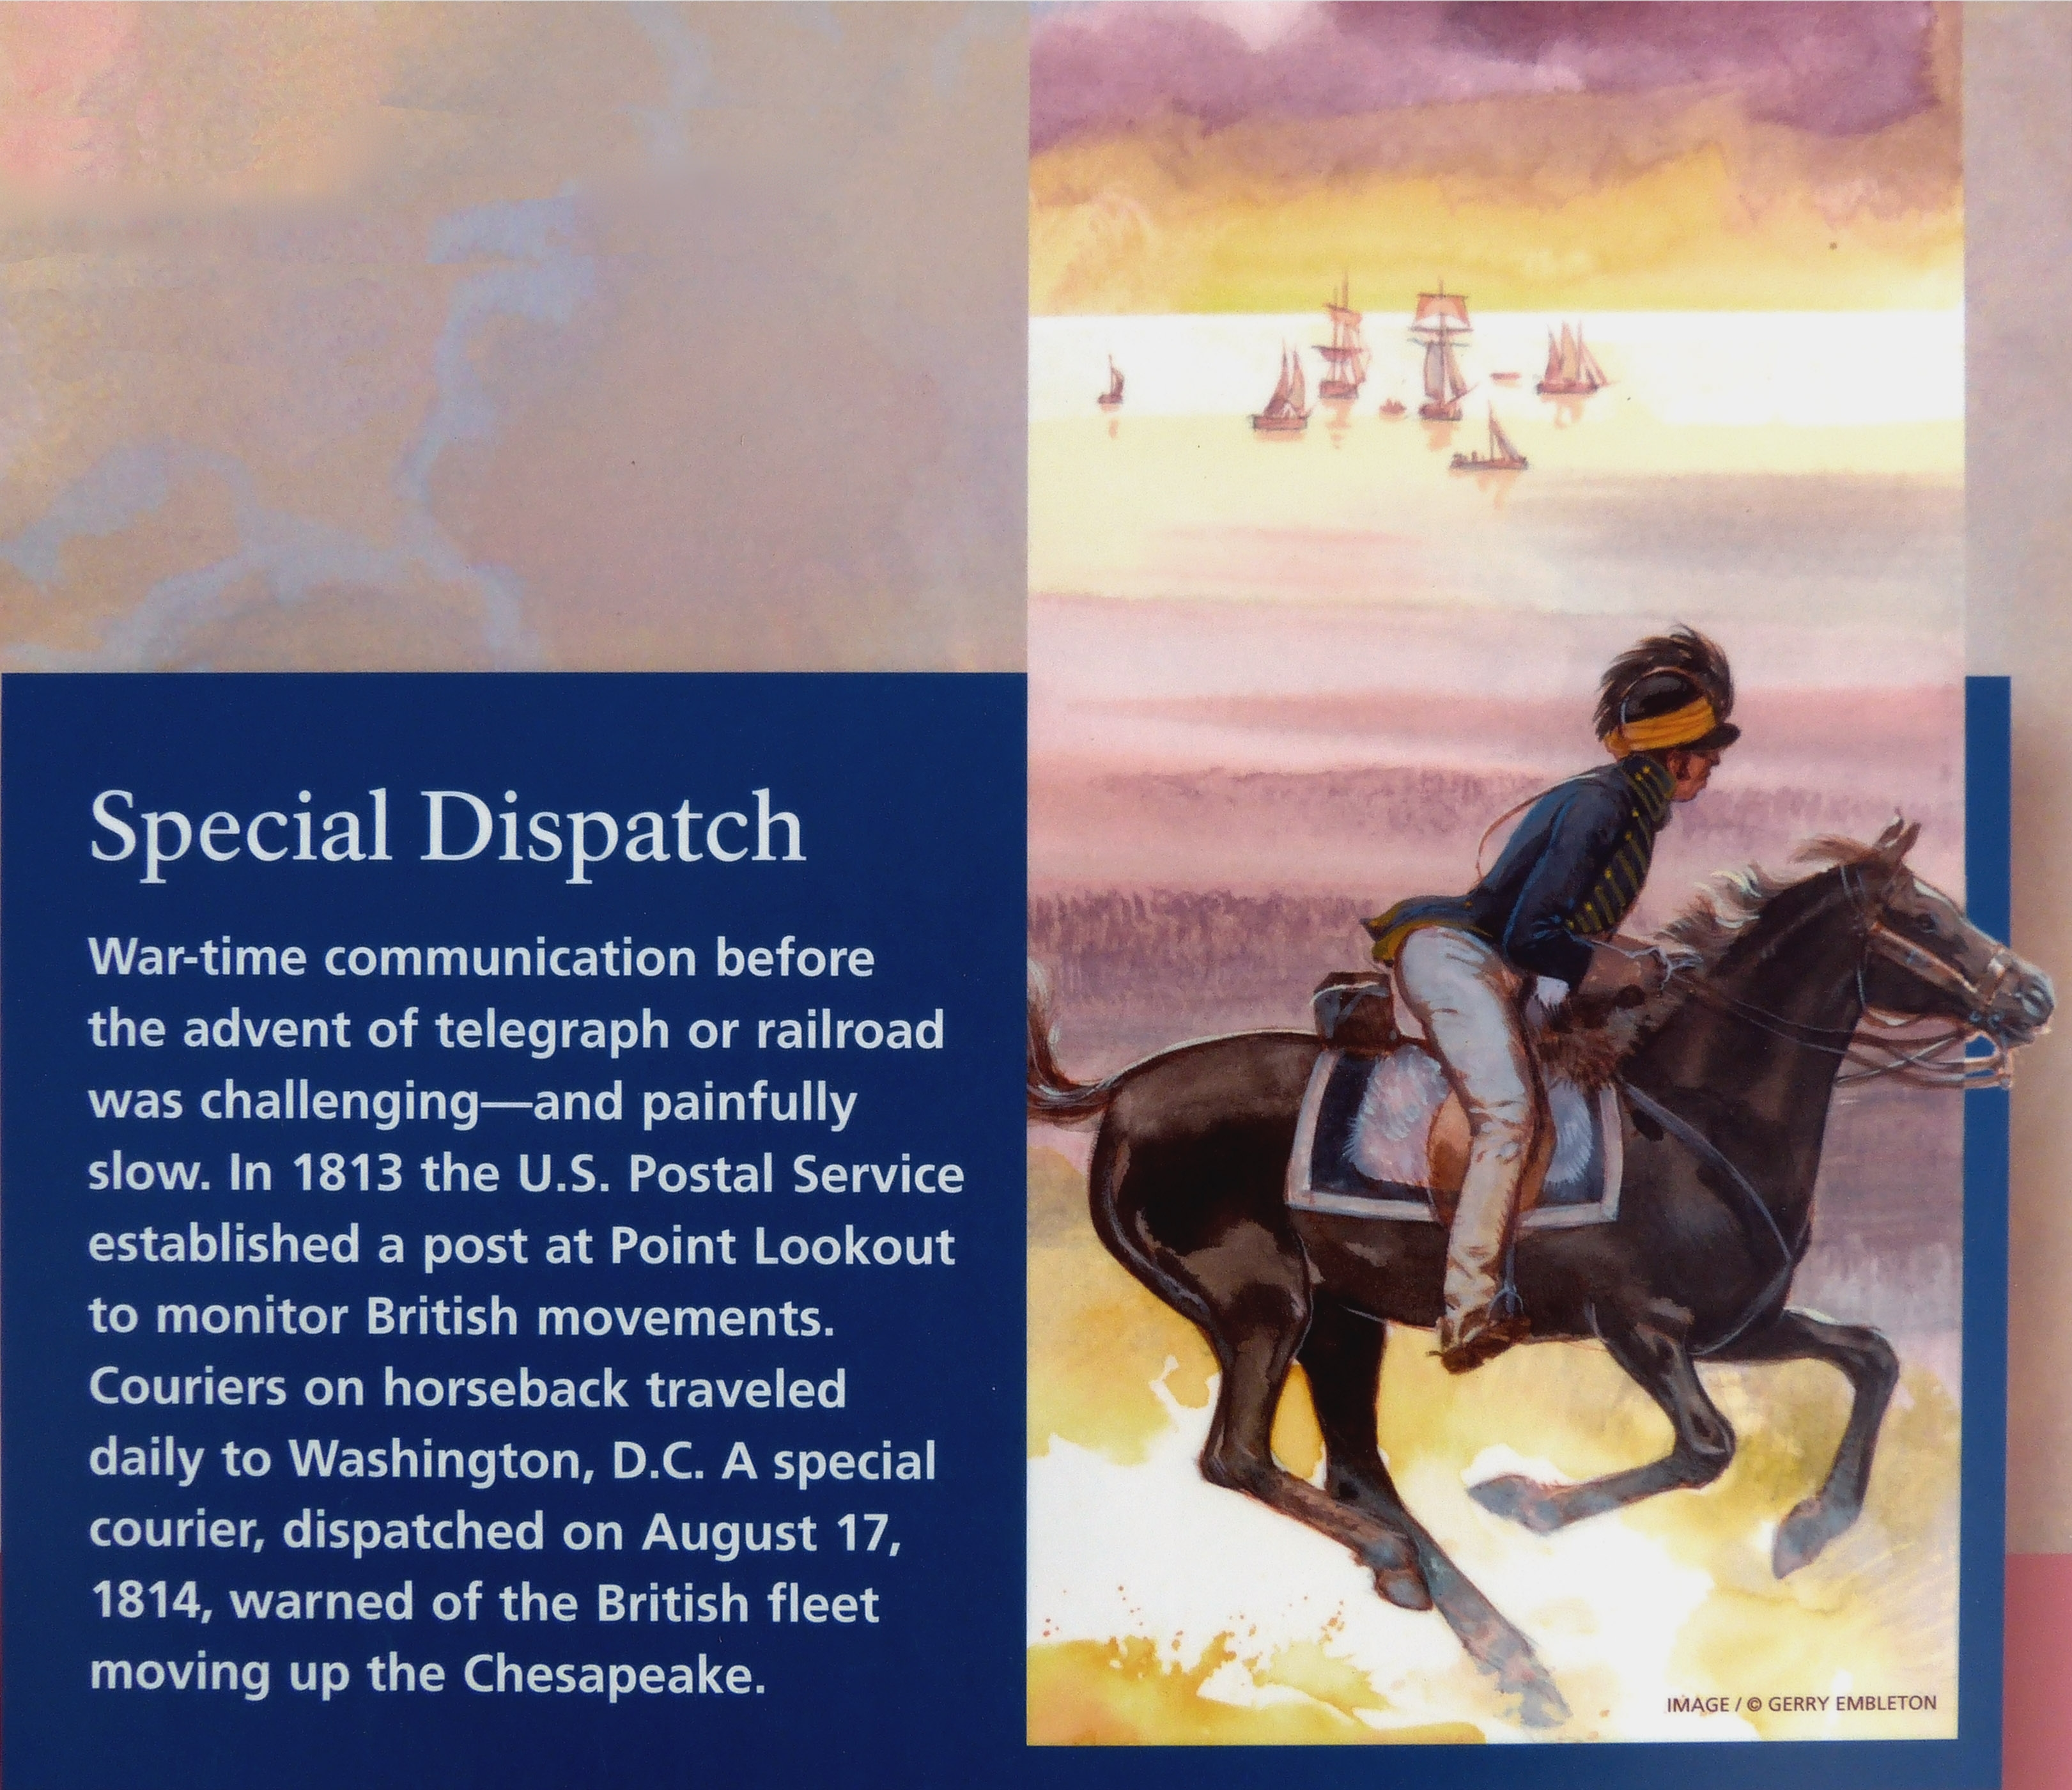 Special Dispatch